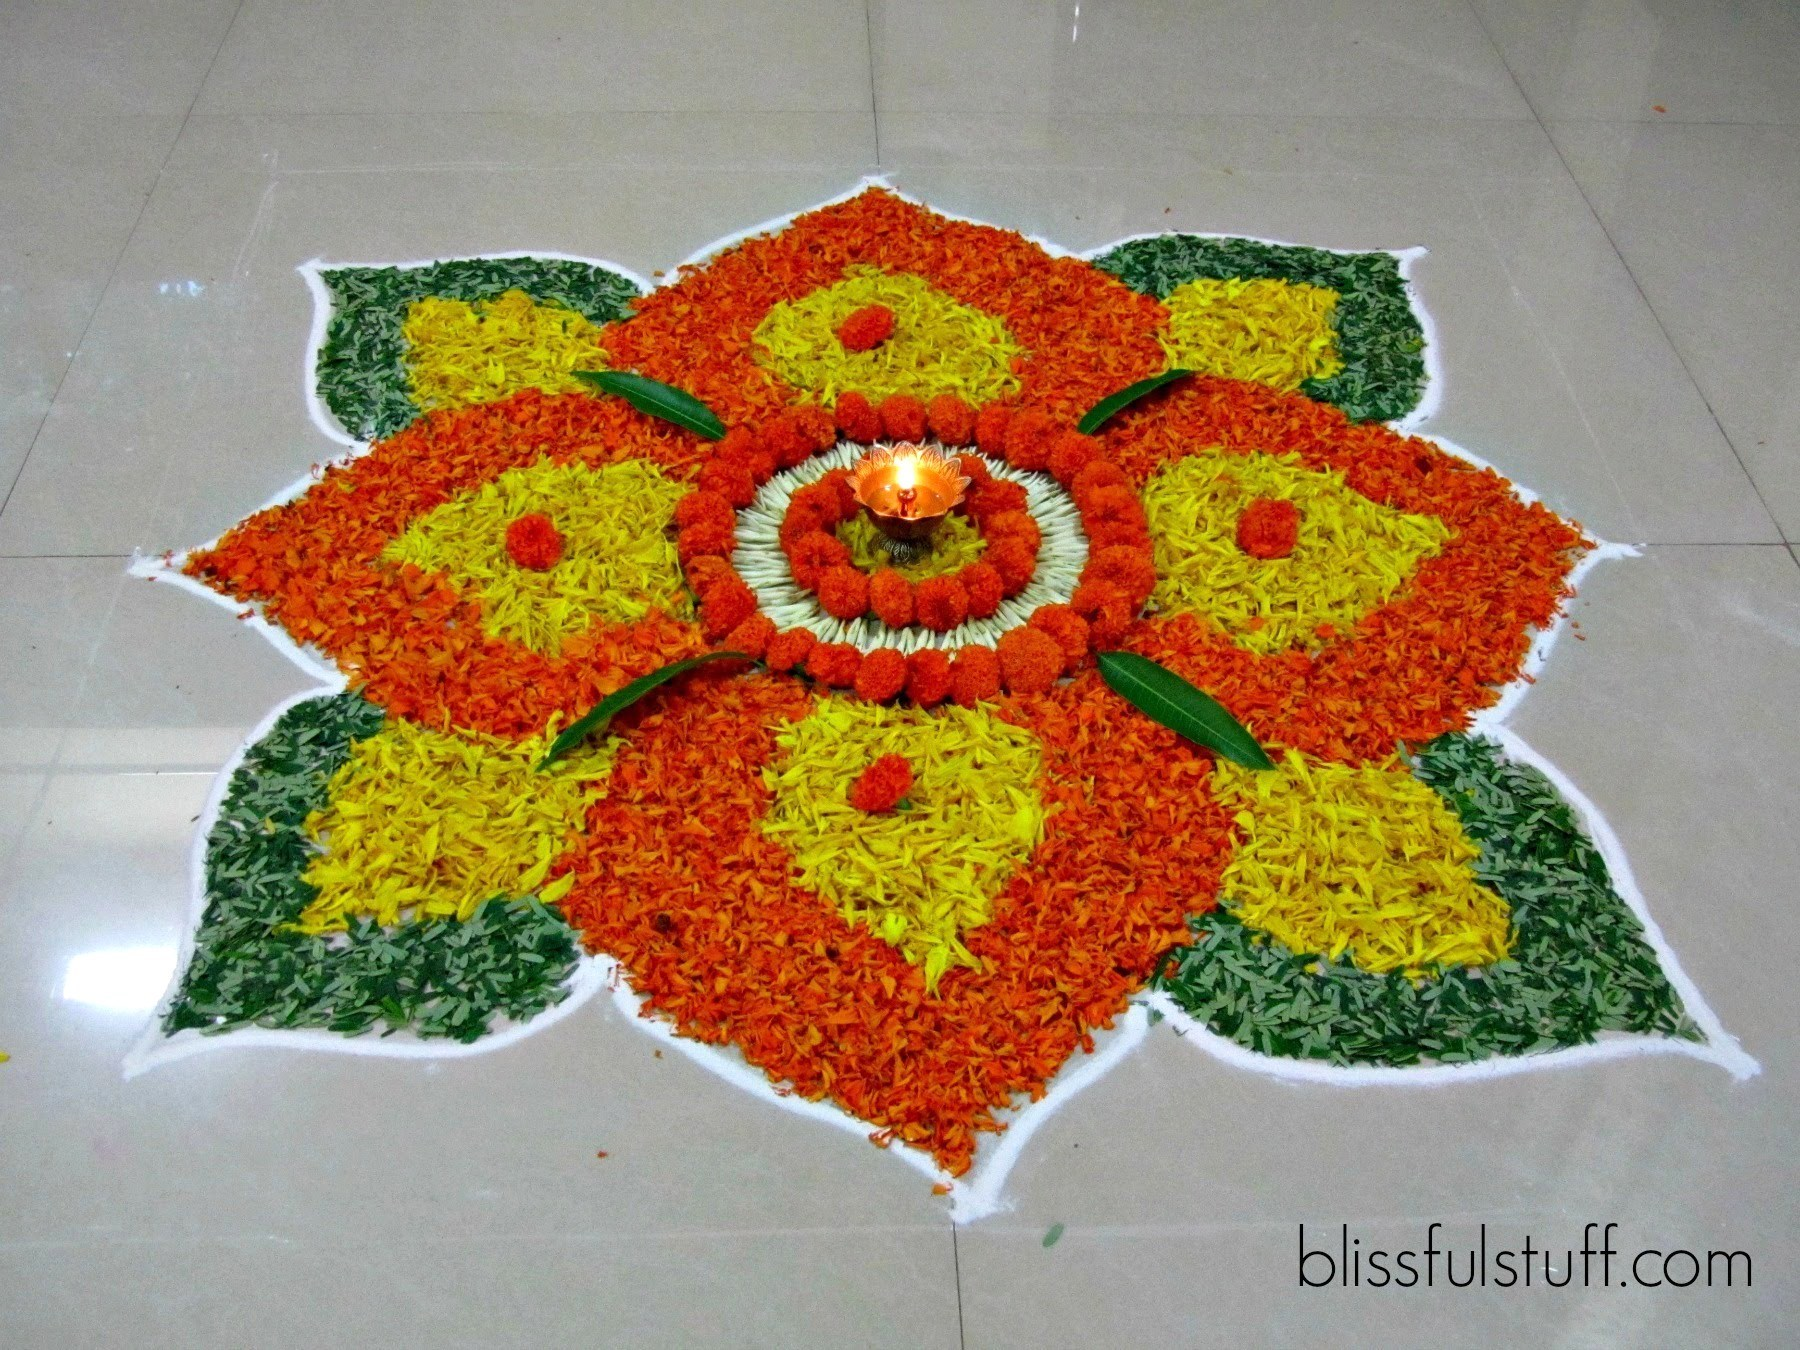 Ultimate Rangoli Designs For Diwali Festival 2017 With Flowers Diyas